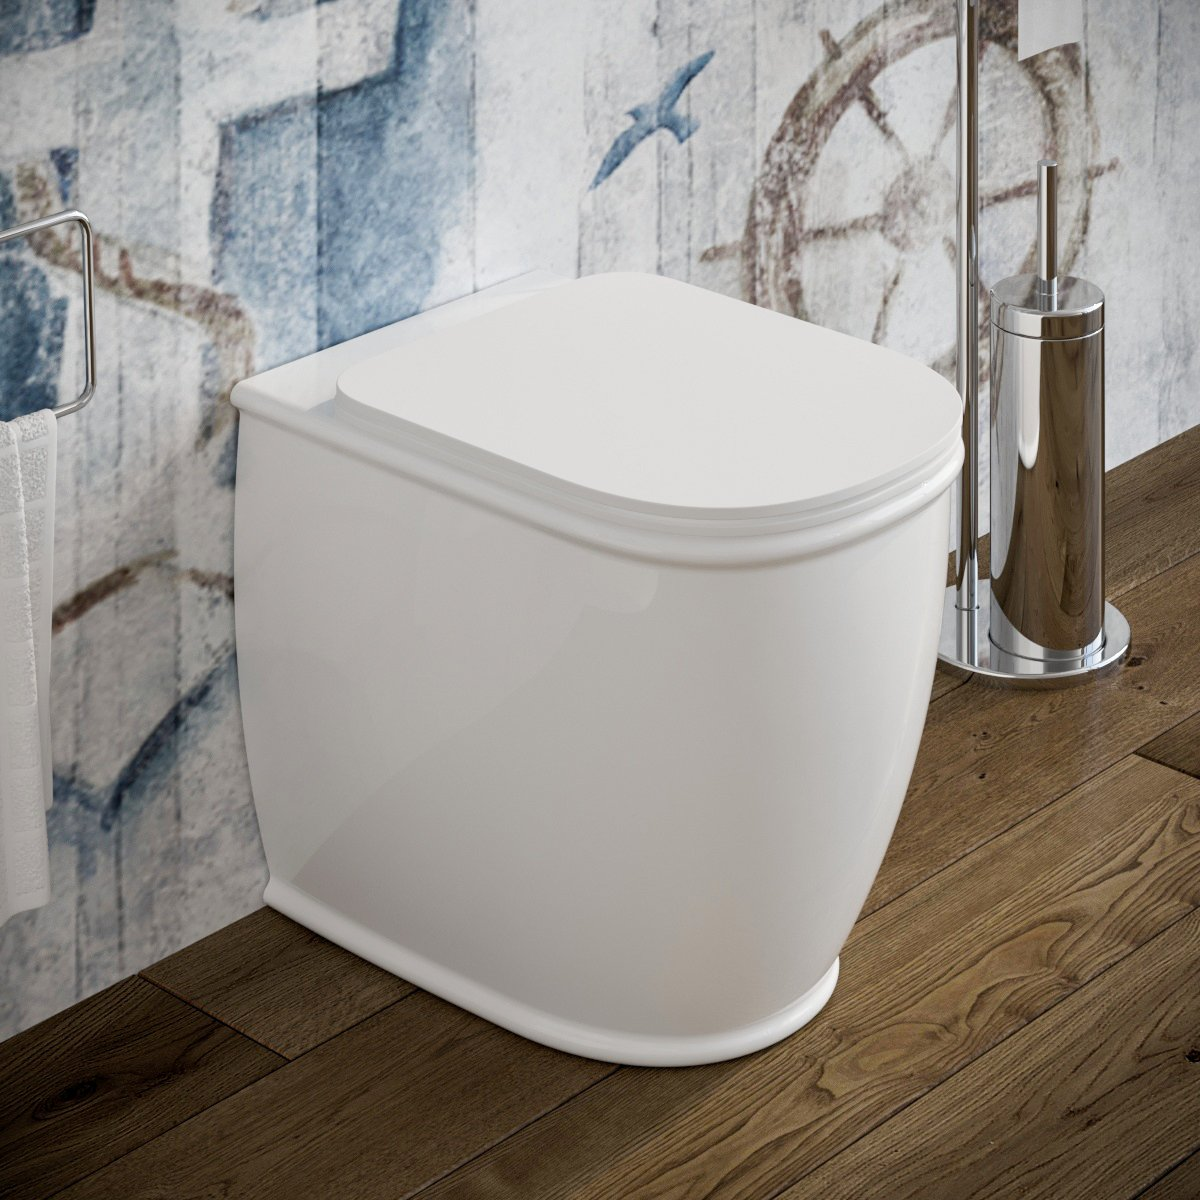 Vaso Wc Genesis Filo Muro In Ceramica Marinelligroup